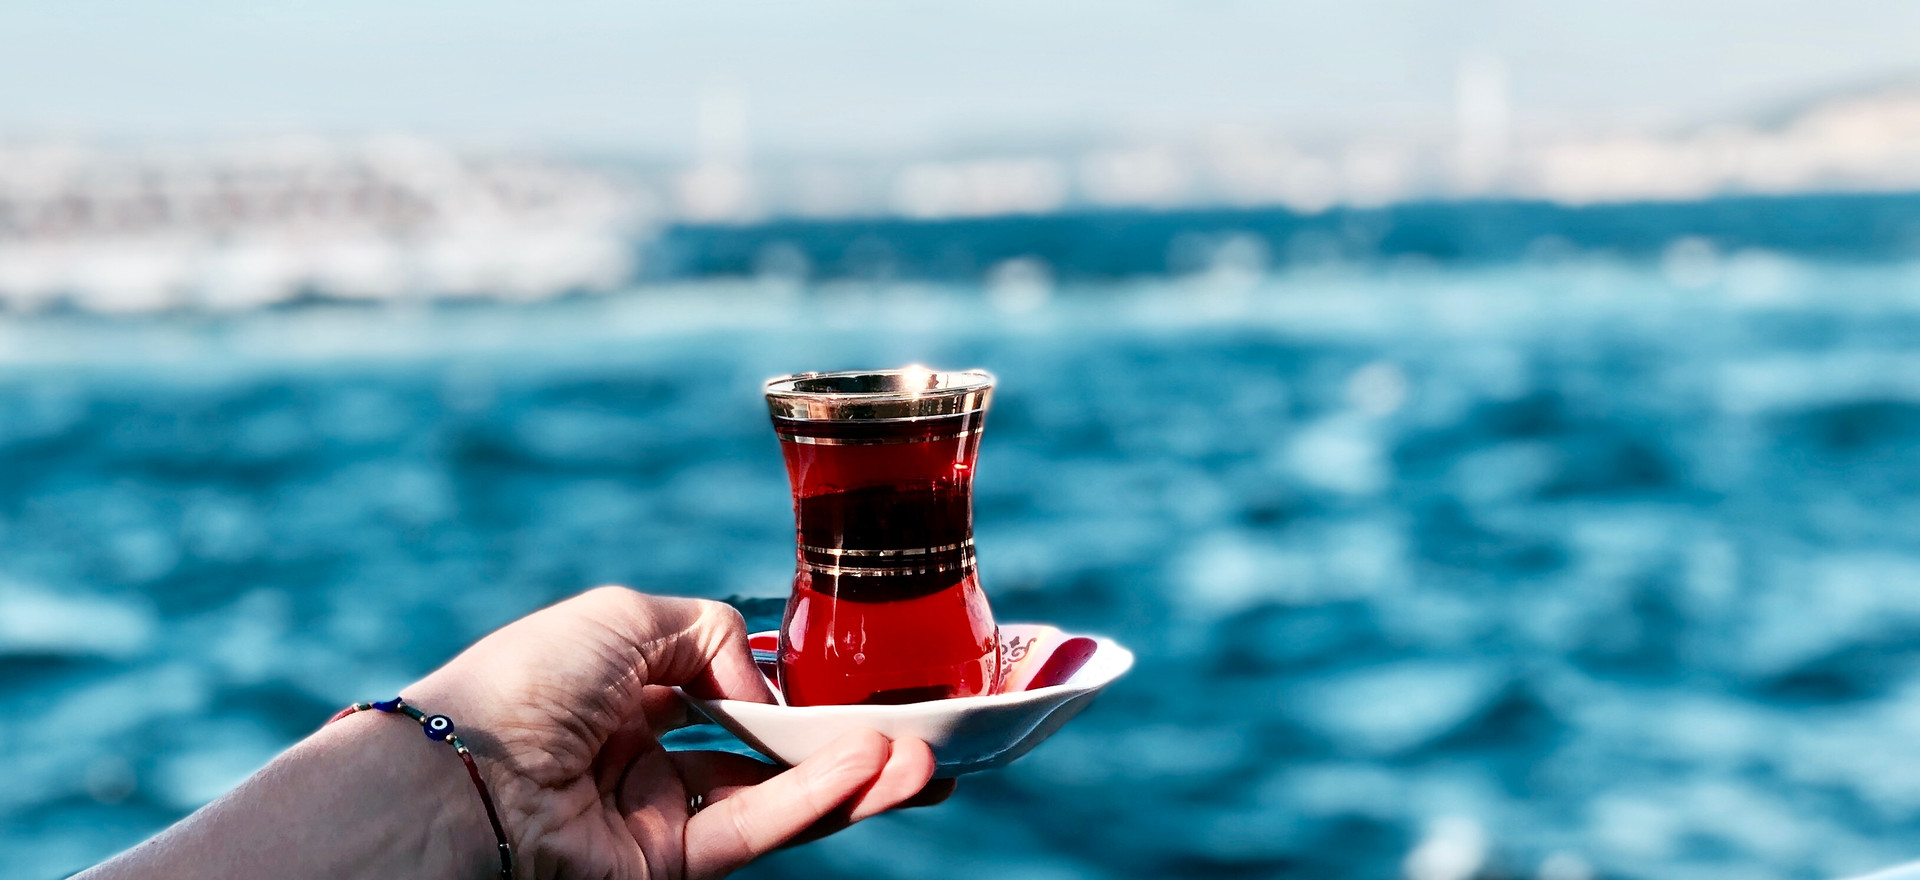 çay at the Bosporus